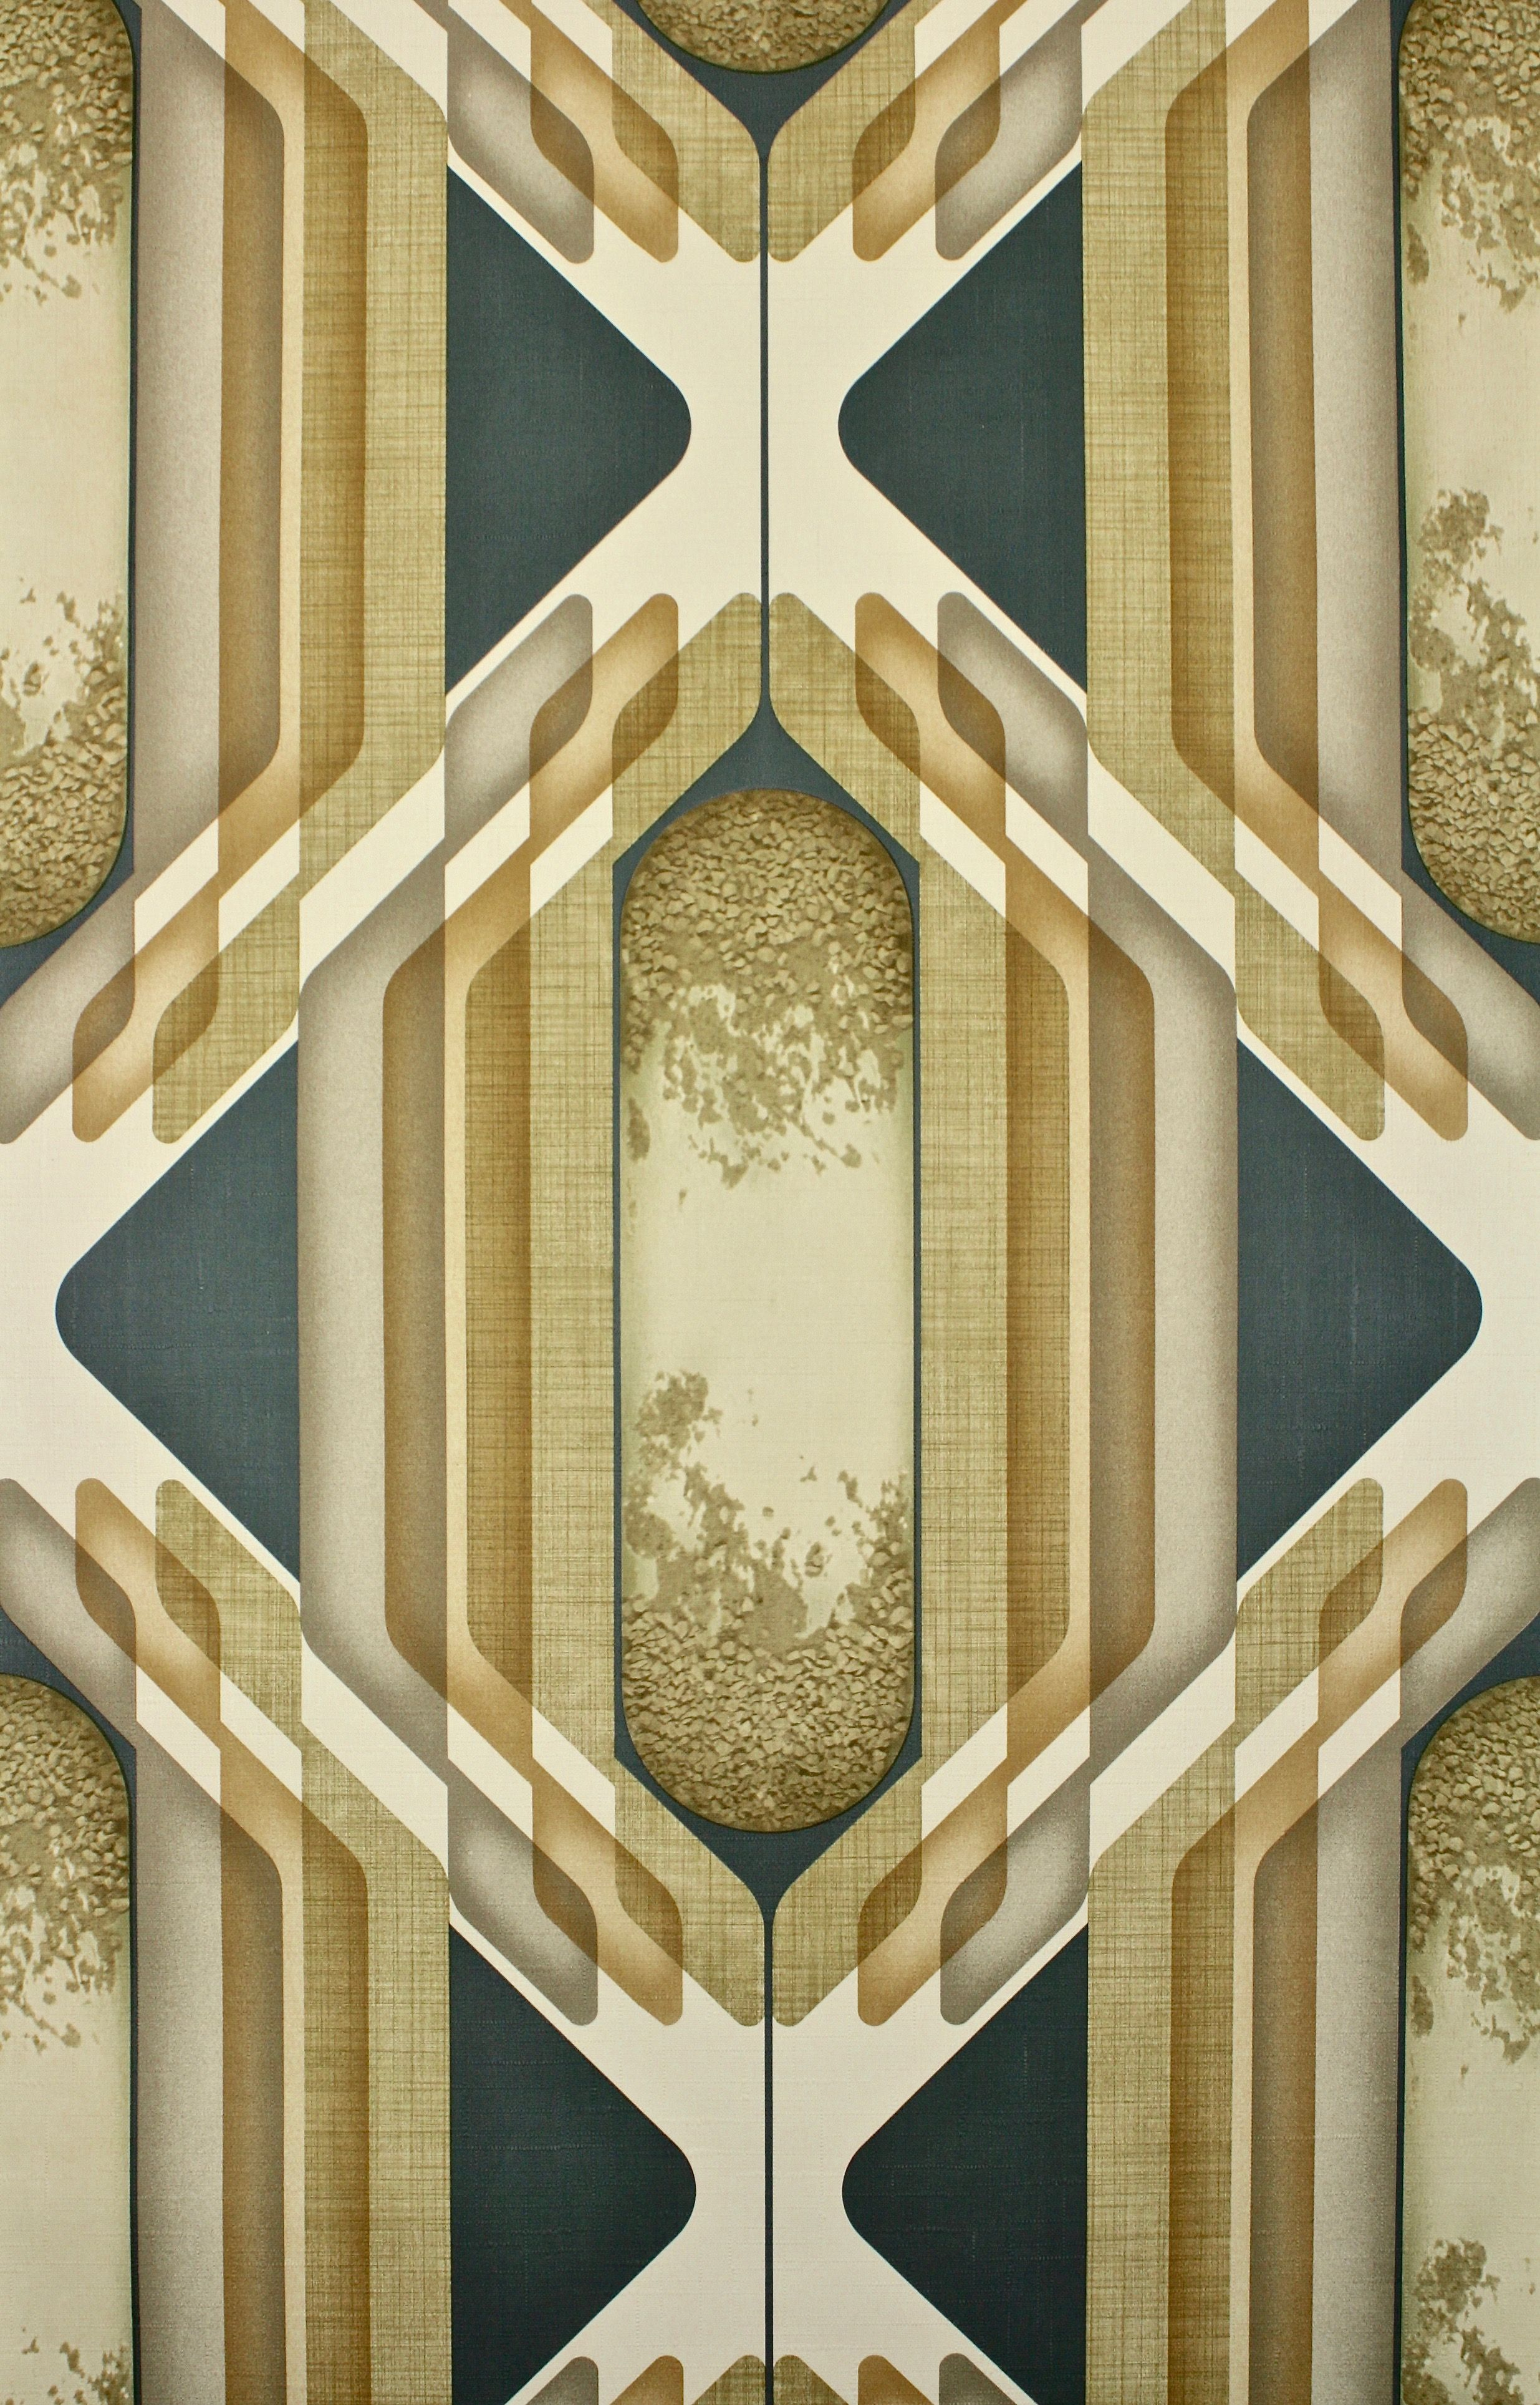 (Nederlands) Retro wallpapers, whether it are geometric